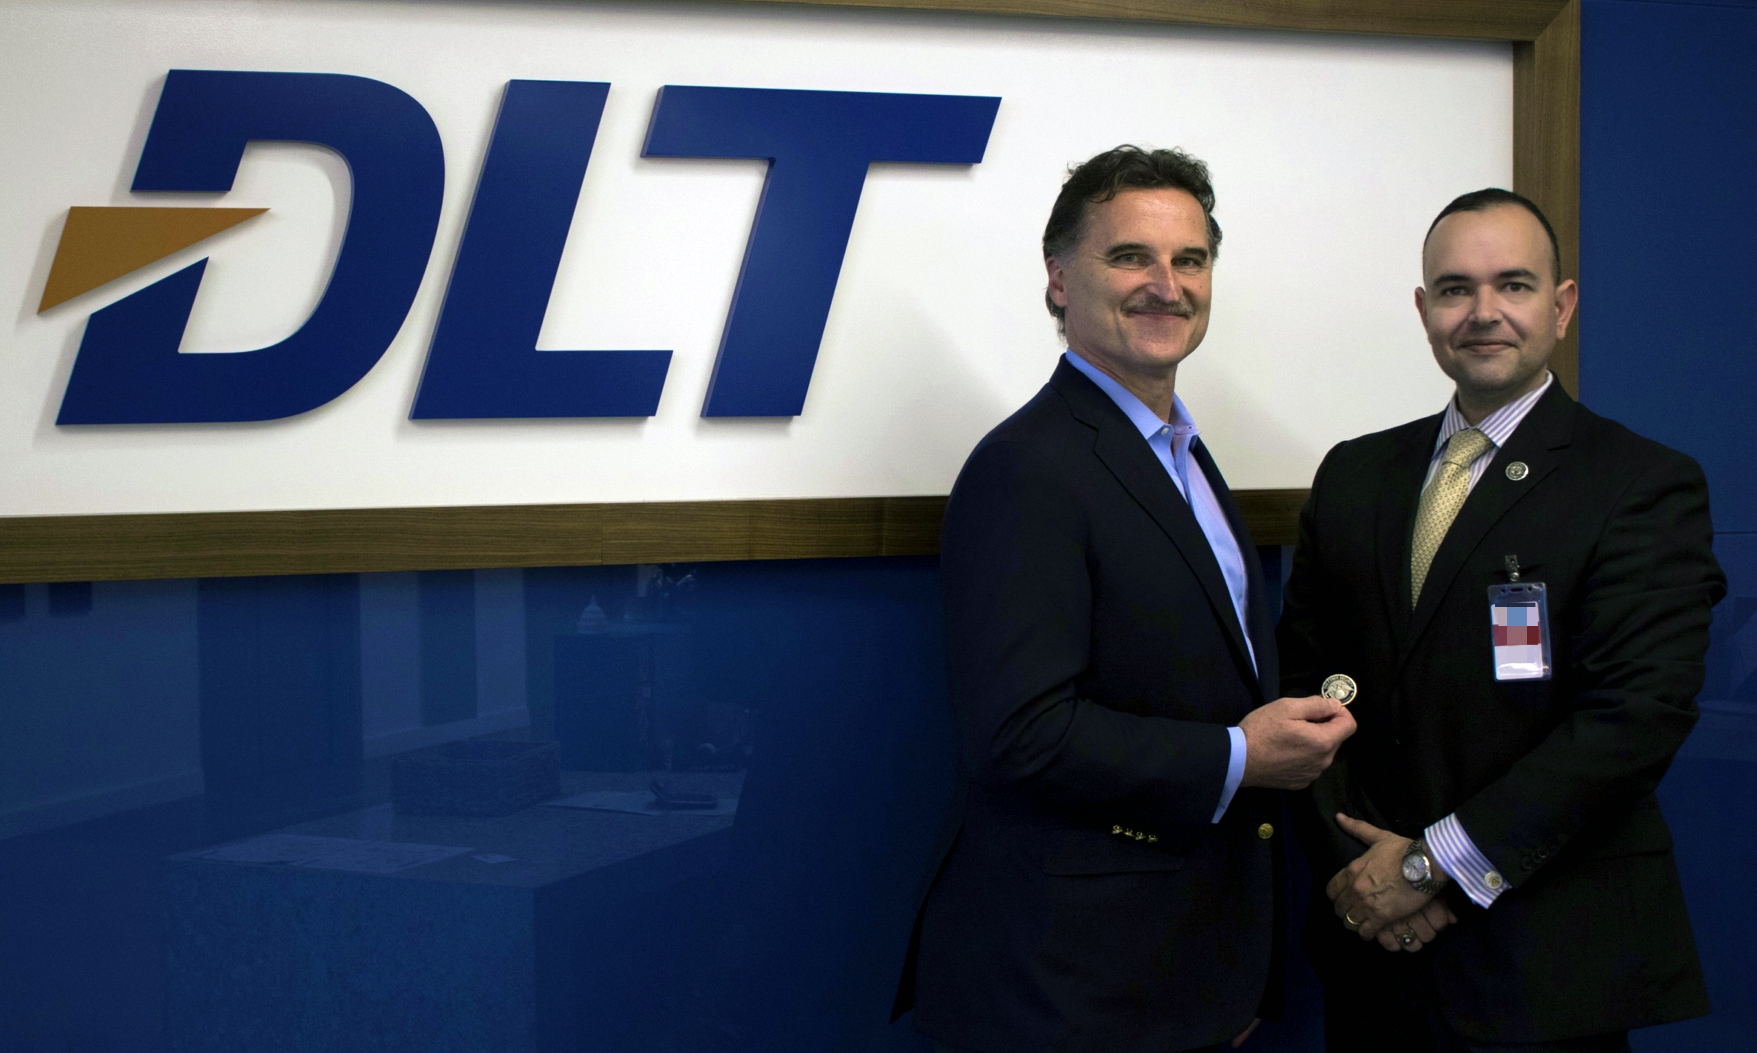 Dlt Solutions Is Presented With A Cyber Security Forum